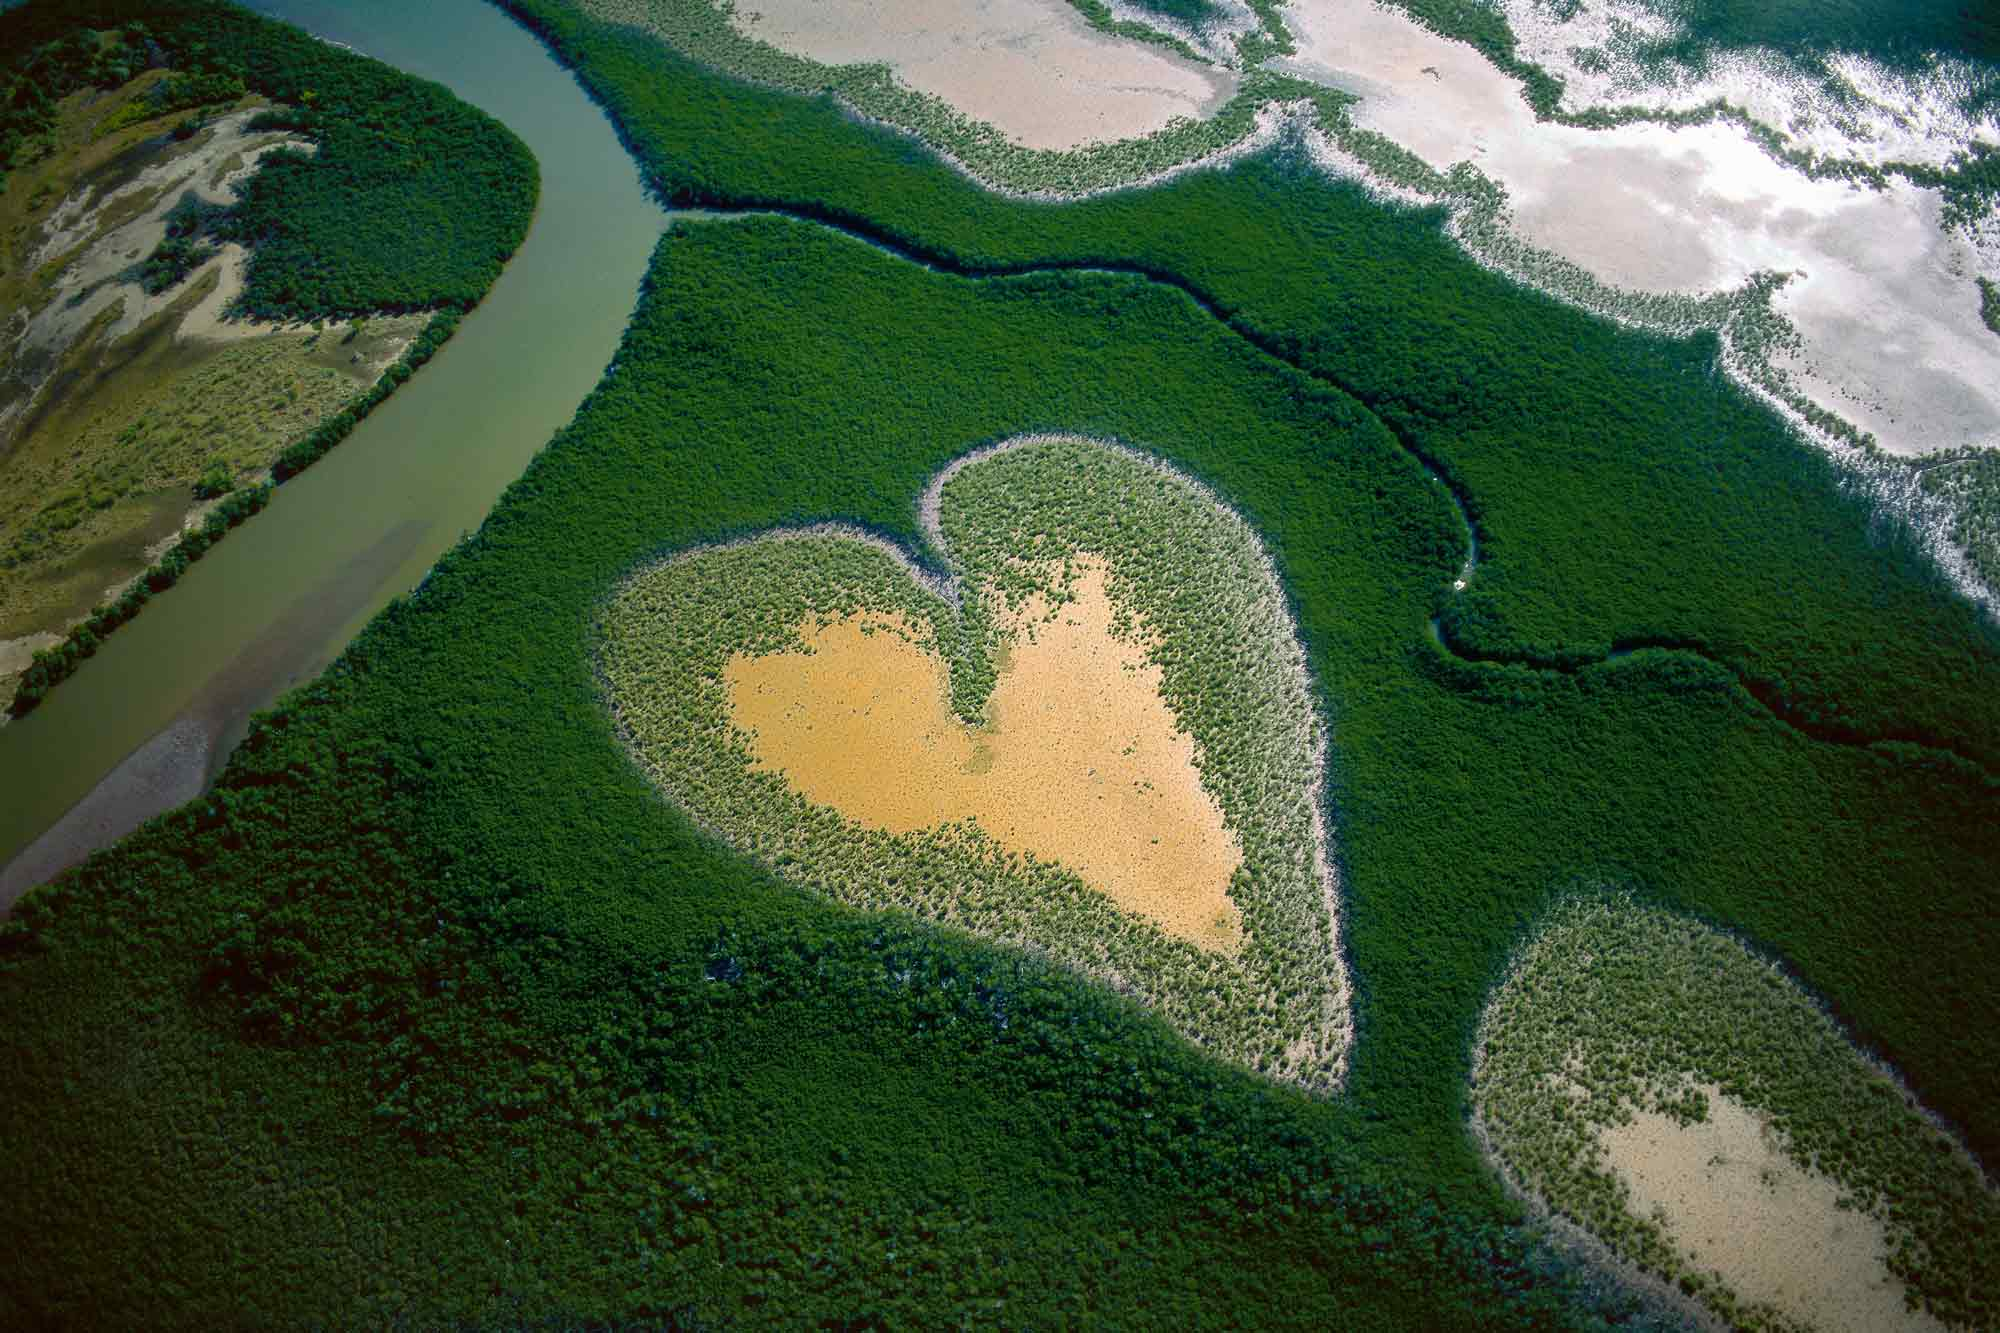 Heart of Voh - Yann Arthus-Bertrand